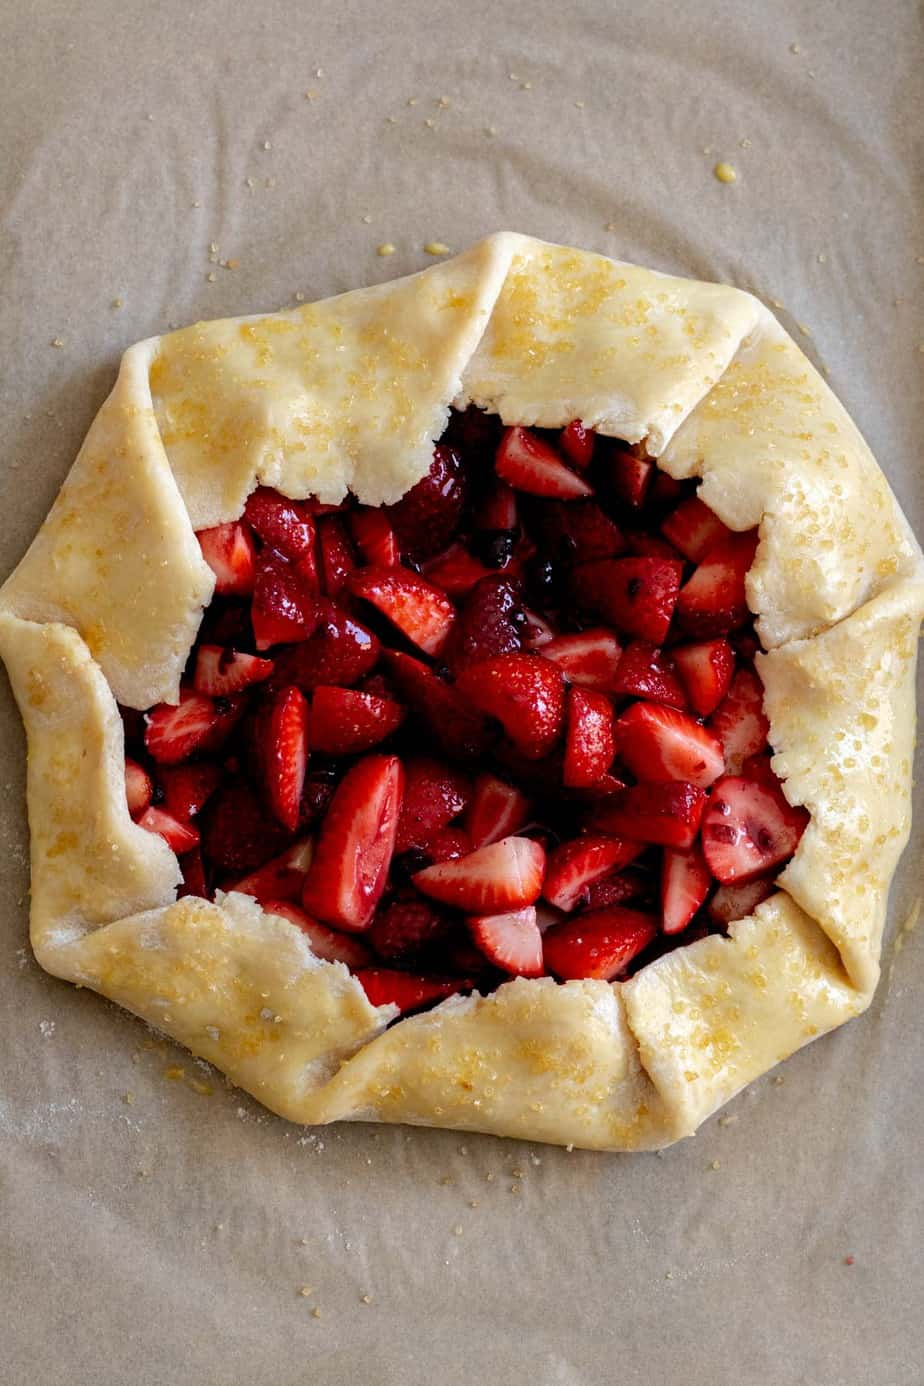 Strawberry galette with edges of dough egg washed